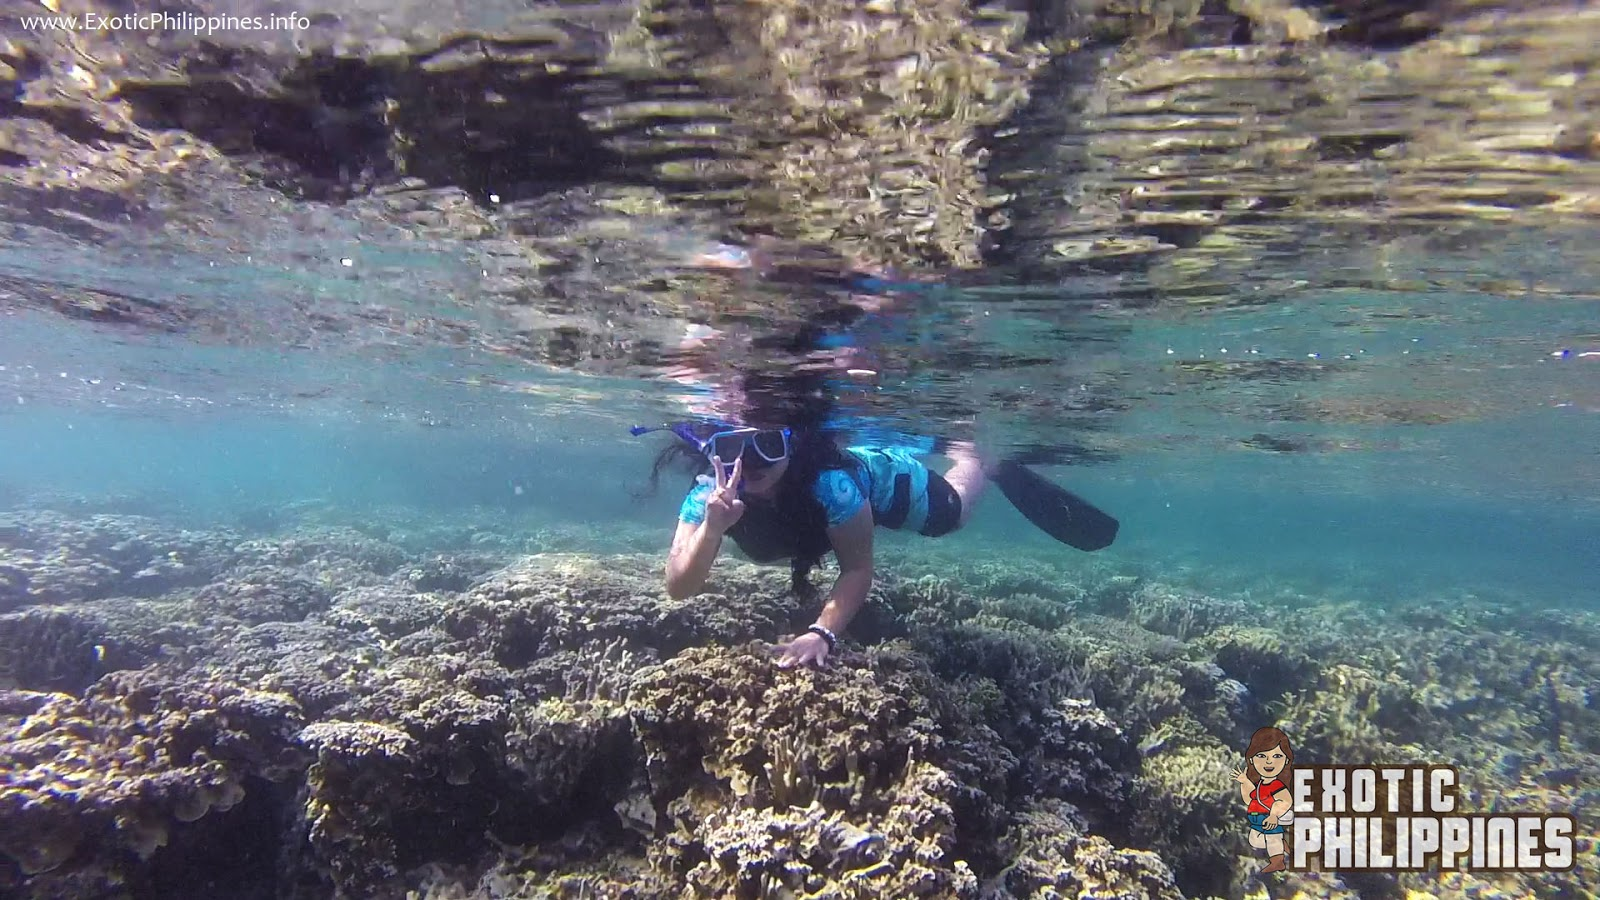 Snorkeling at the Siete Pecados of Coron Palawan Exotic Philippines Travel Blog Gay Aida Dumaguing